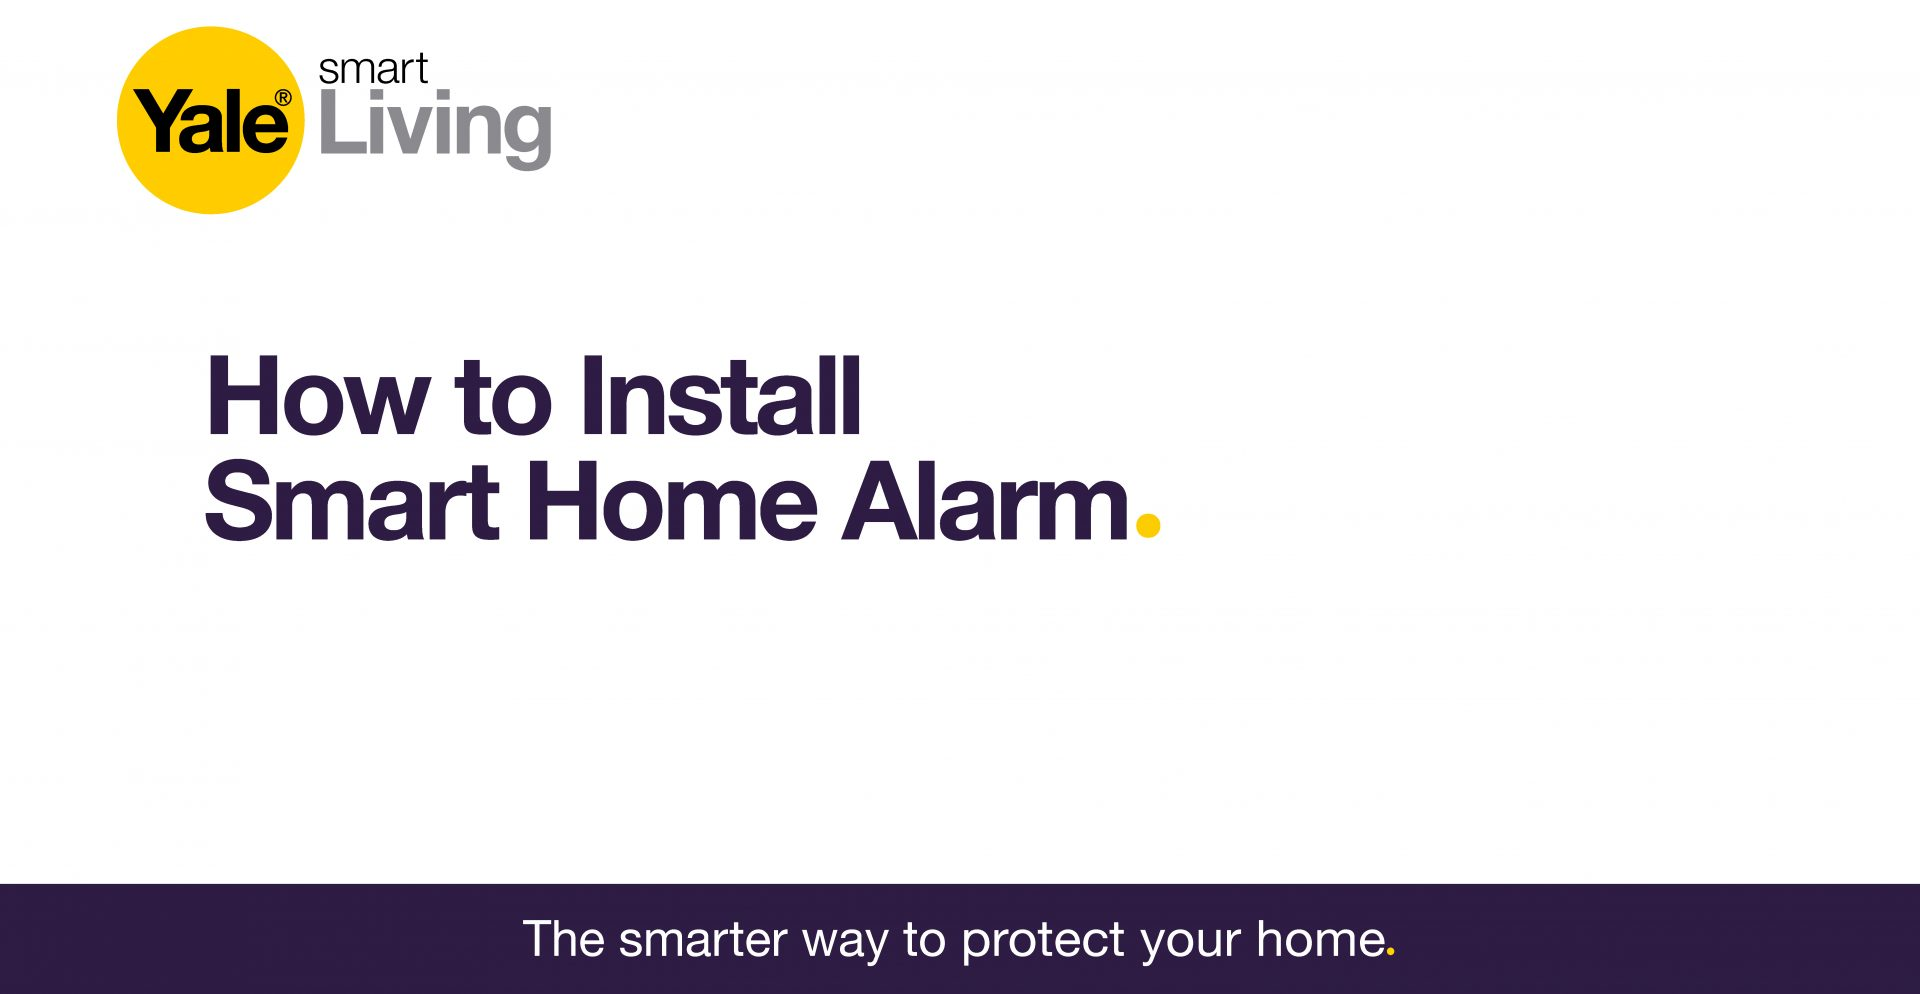 image linking to video showing how to install a smart home alarm.